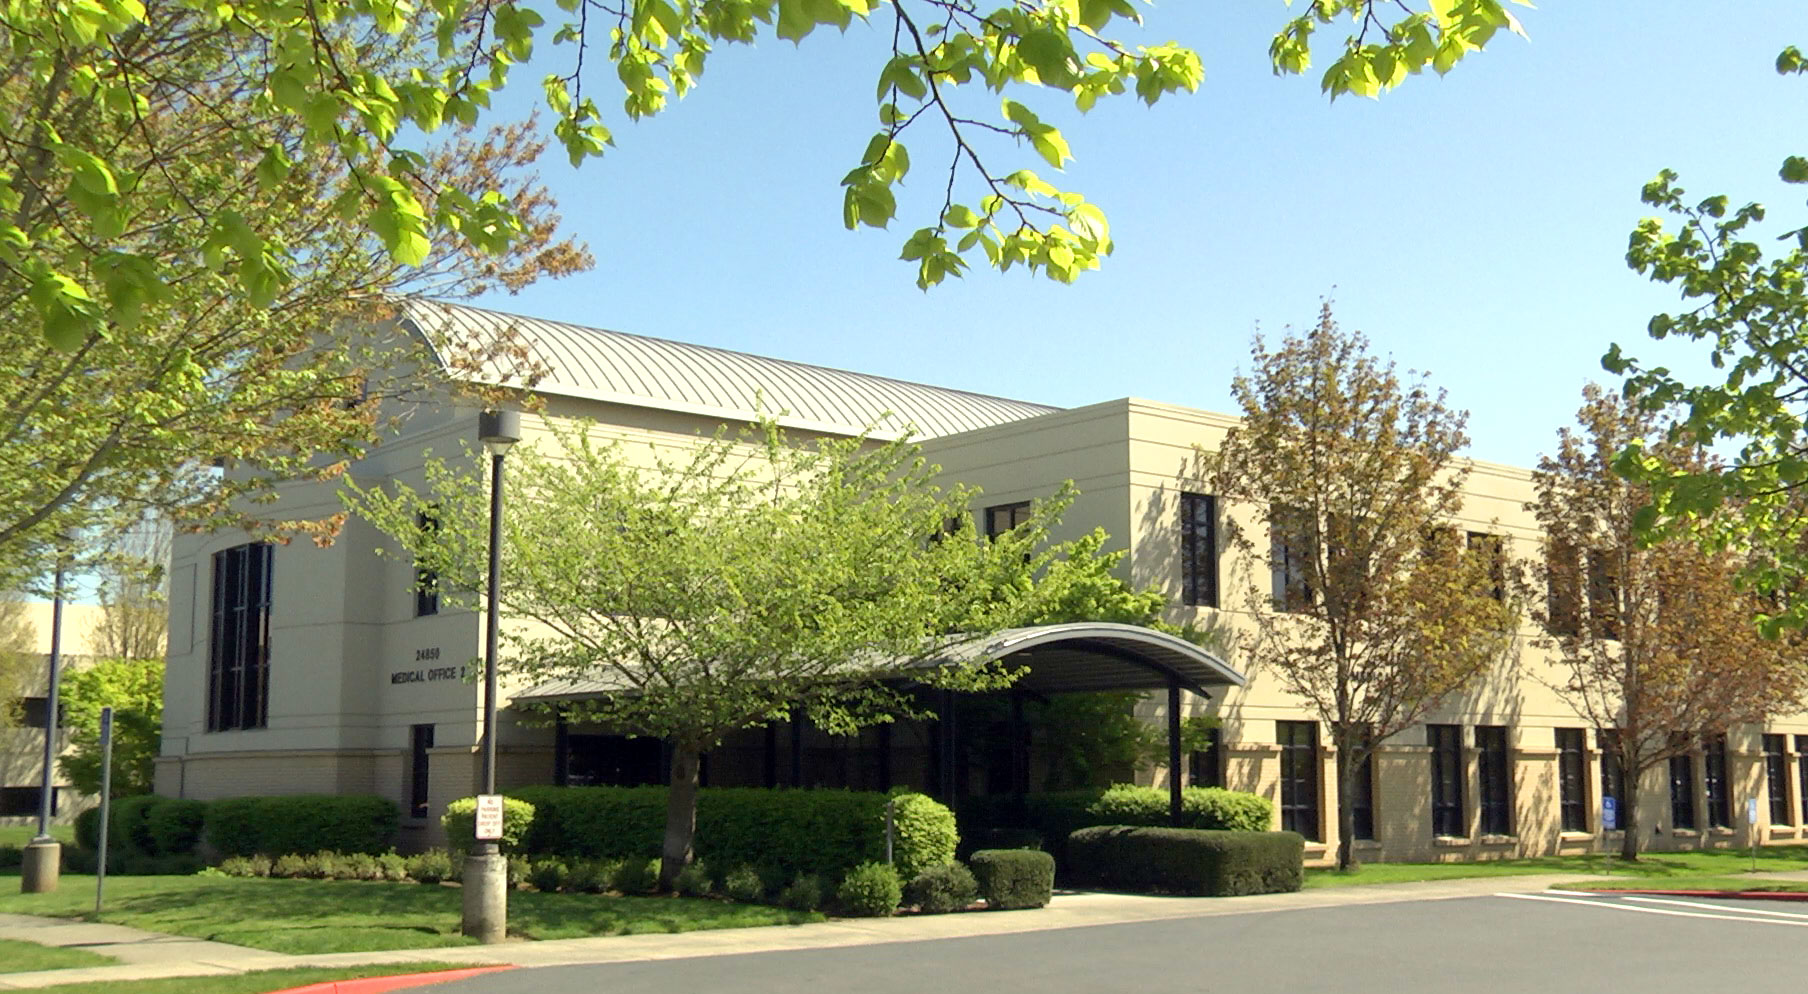 Calcagno Pediatrics is right off Stark St. in Gresham and provides easy I-84 access, ample parking, beautiful outdoor spaces and electric car charging!